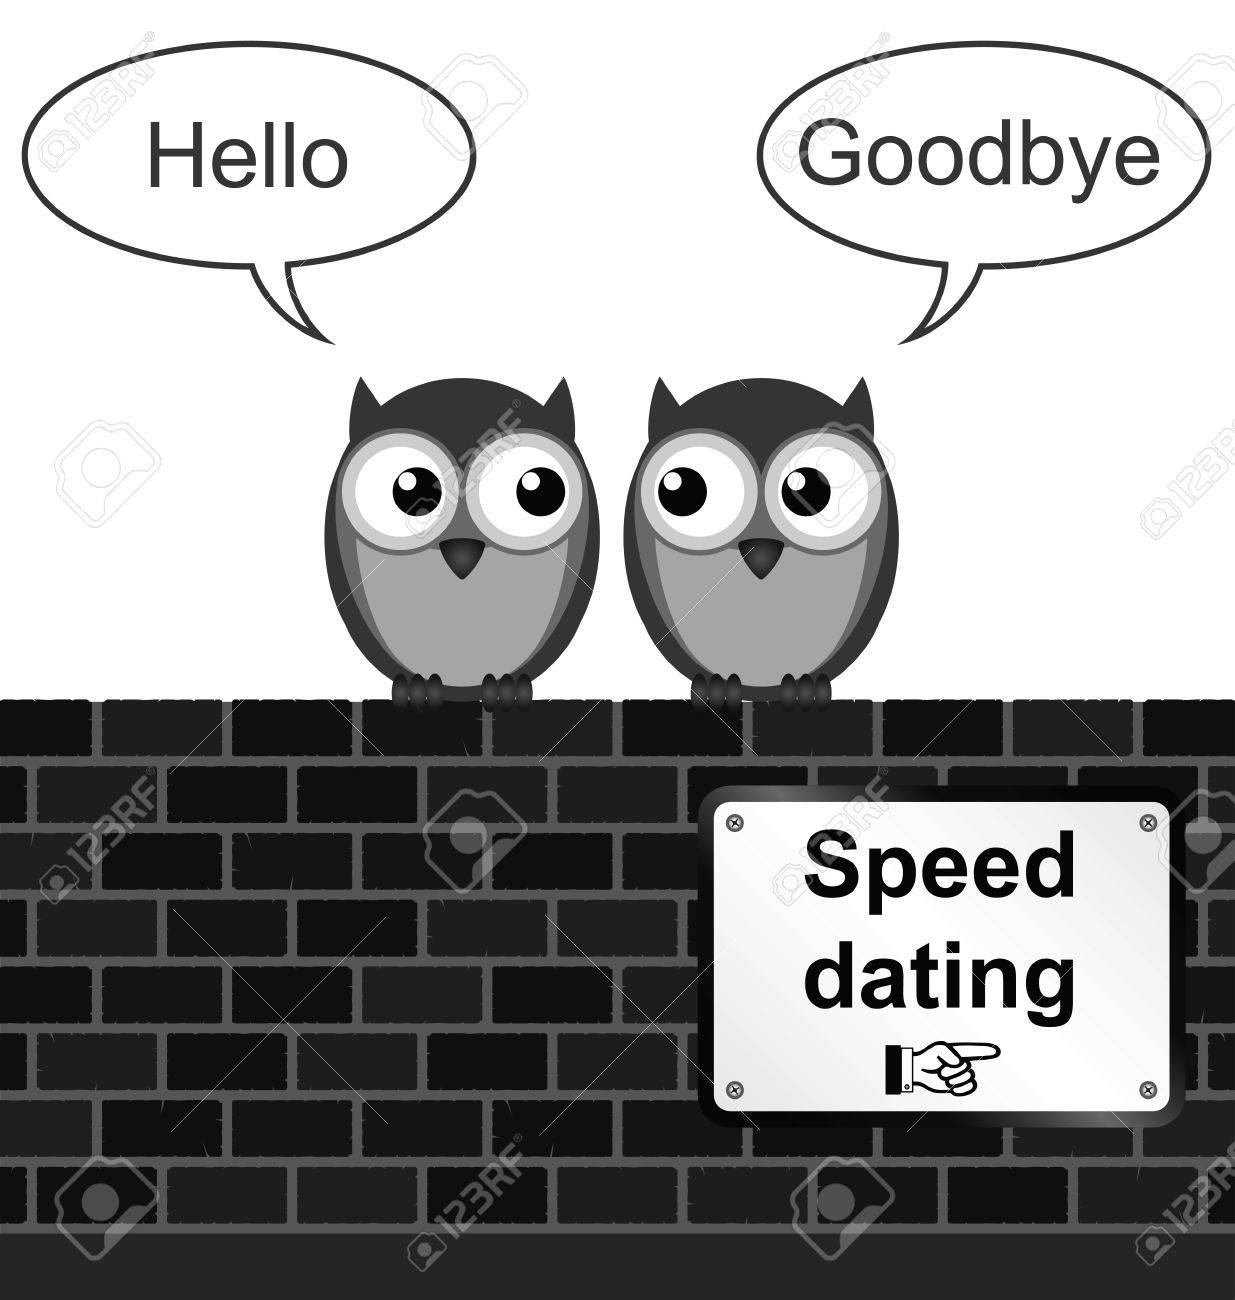 Speed Dating at The Owl and Pussycat